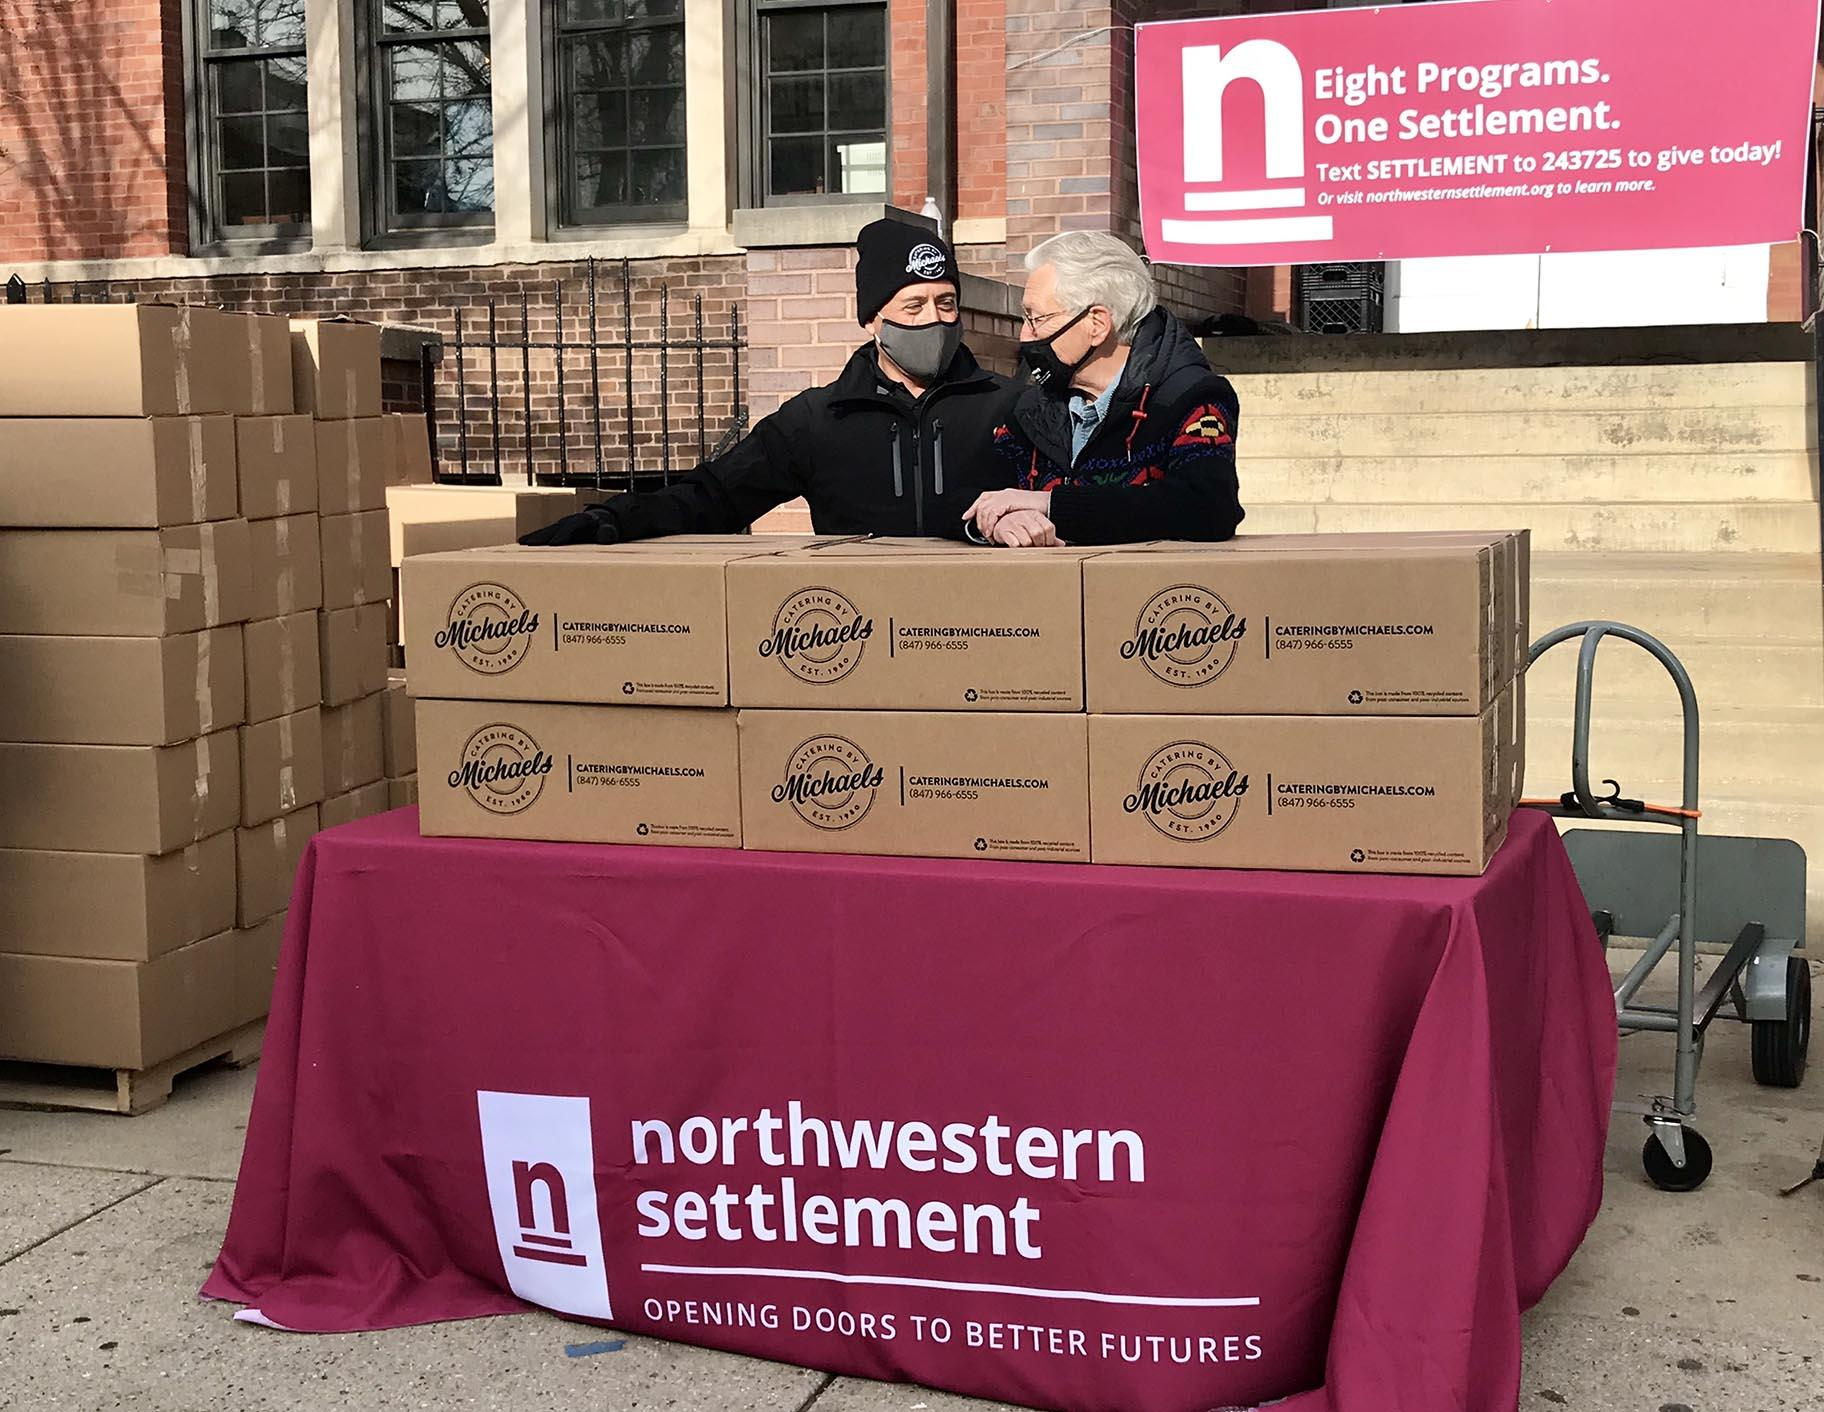 Stewart Glass, left, president of Catering by Michaels, and Ron Manderschied, president of Northwestern Settlement, stand with some of the Thanksgiving boxes before handing them out to the community. (Ariel Parrella-Aureli / WTTW News)